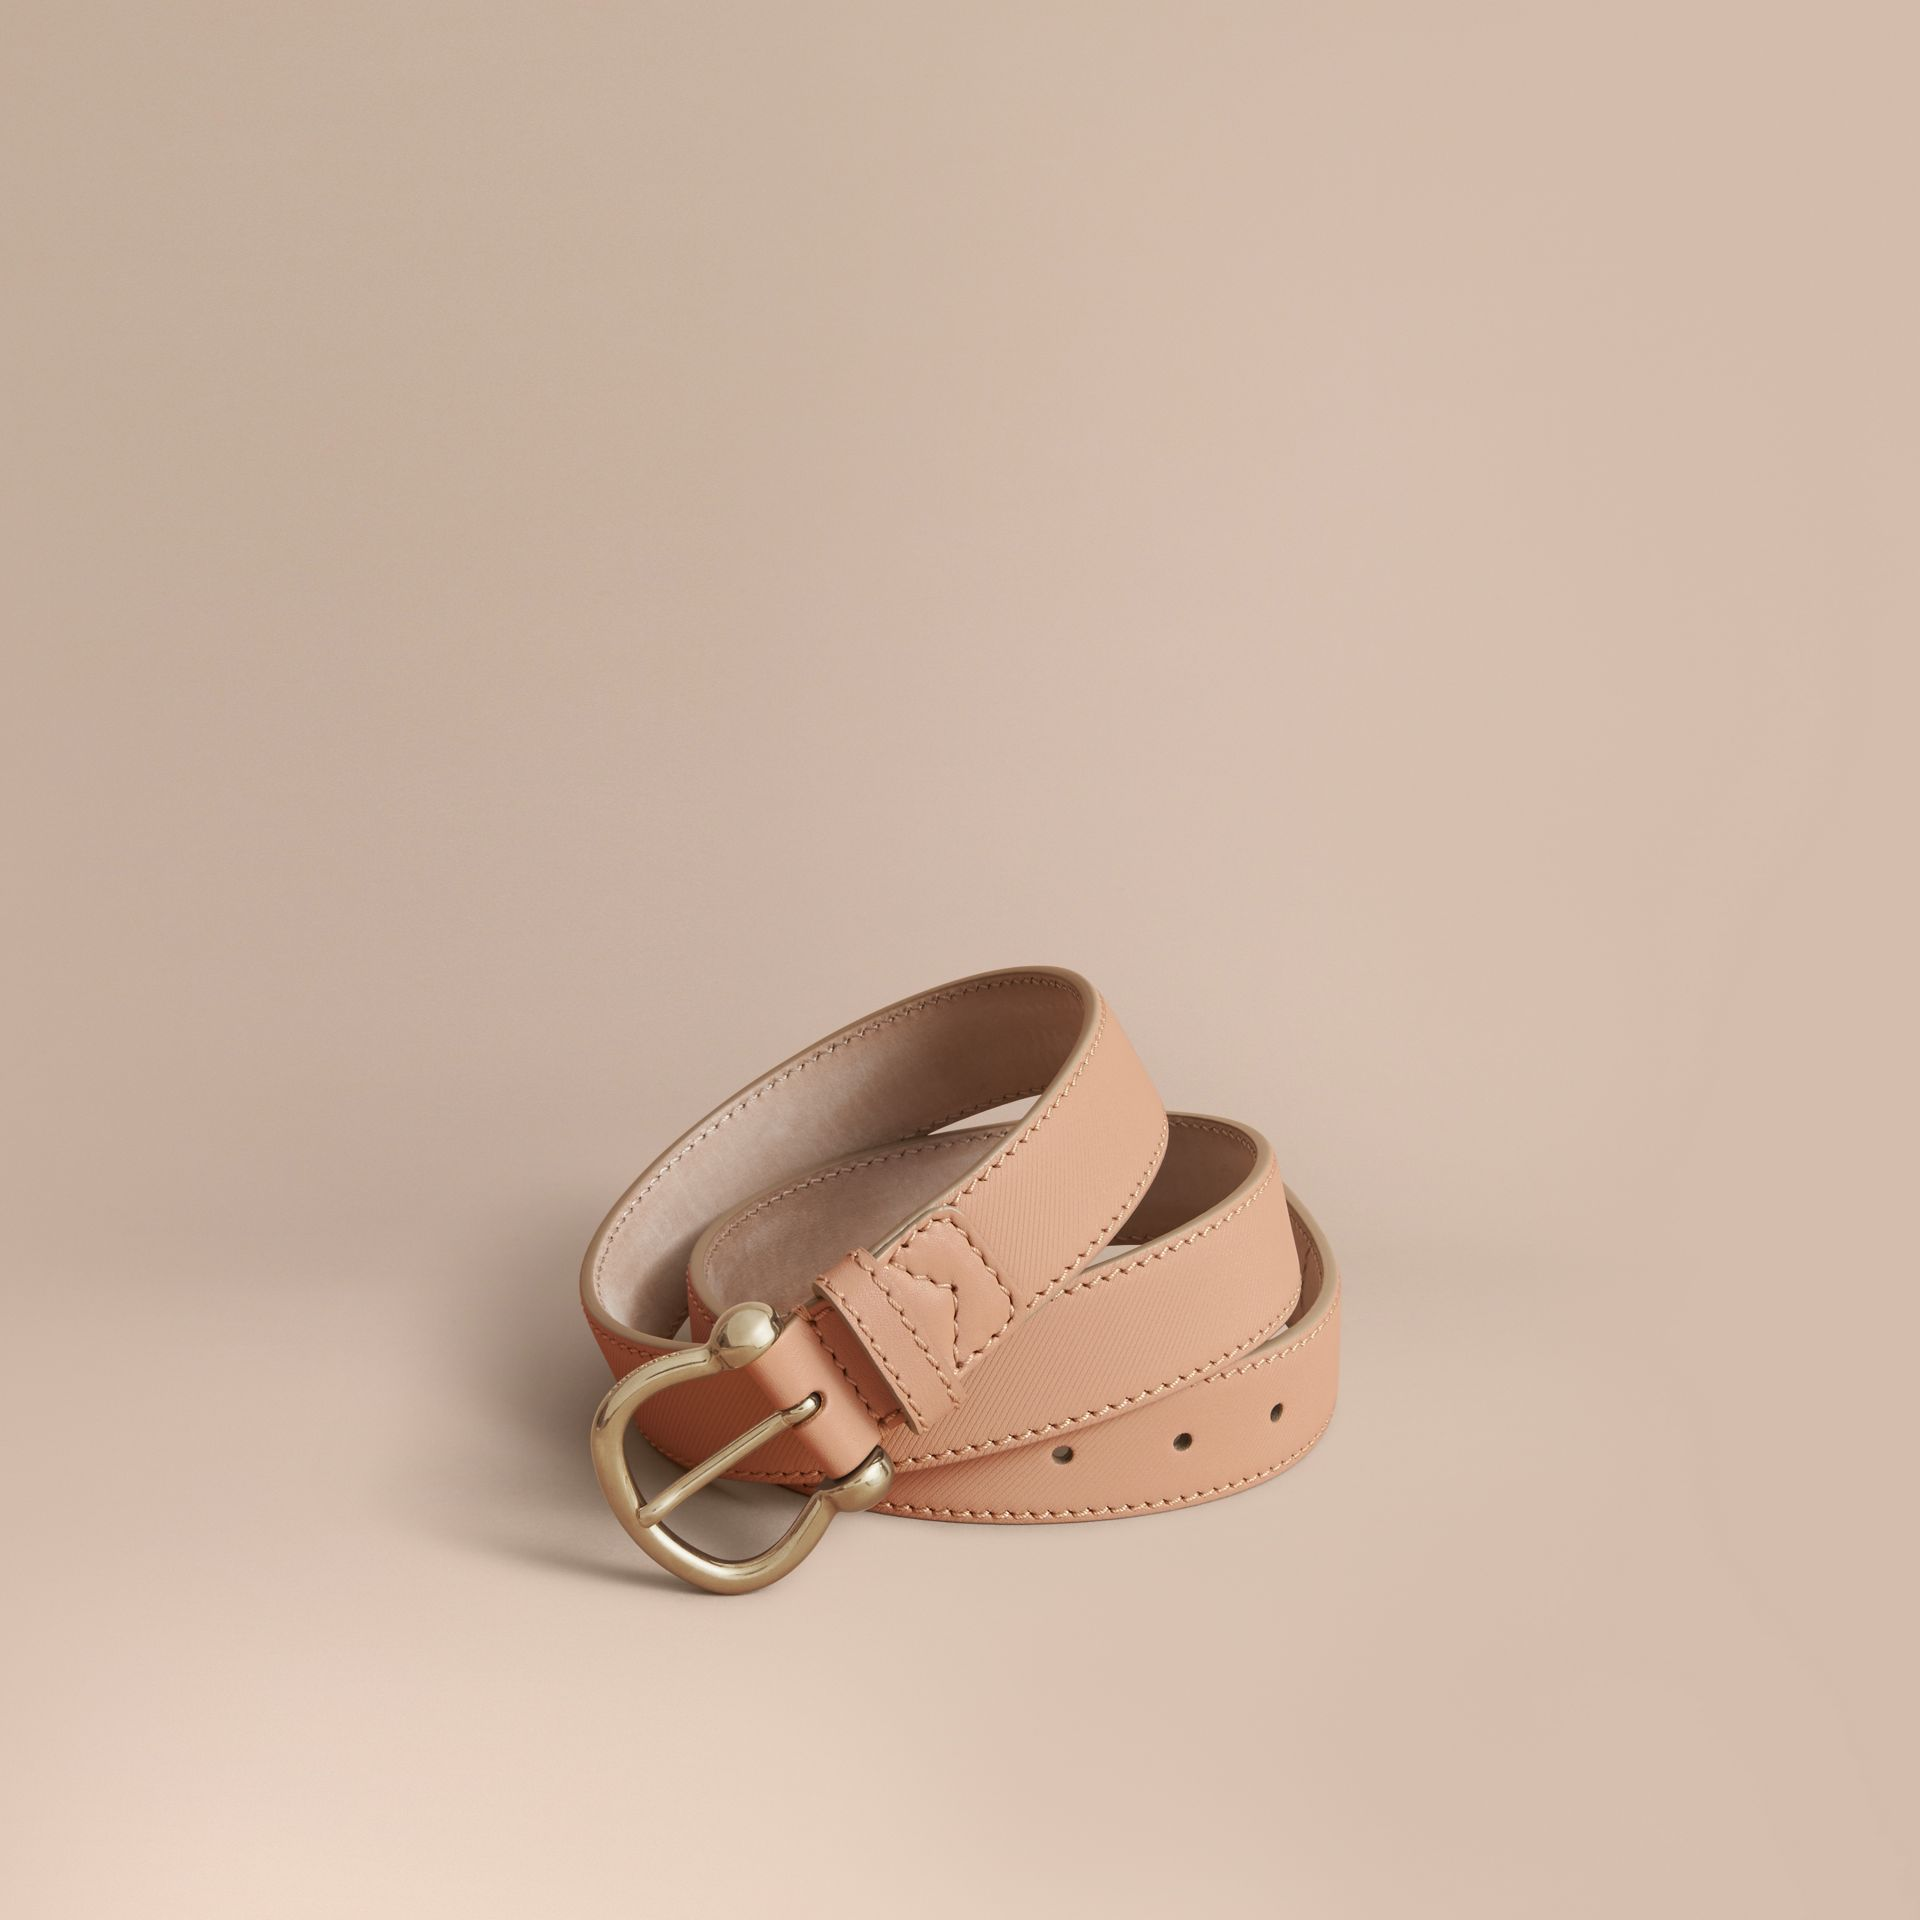 Trench Leather Belt in Honey - Women | Burberry United States - gallery image 1